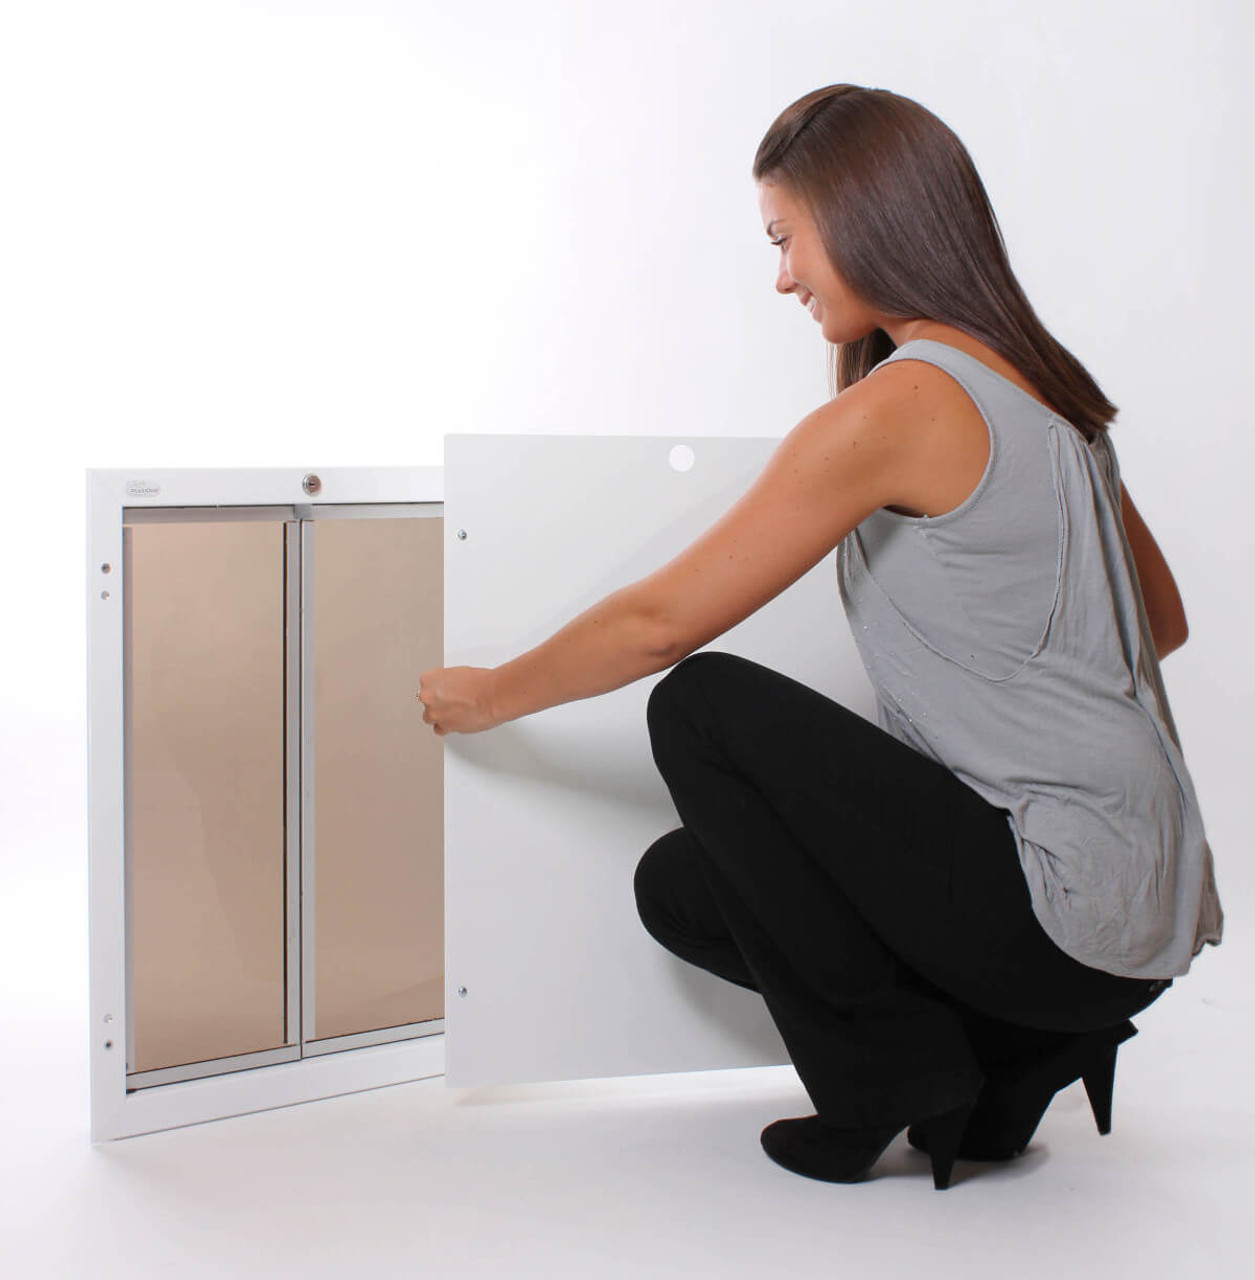 Plexidor dog door is one of the most secure with its steel cover which screws to the frame for a tamper resistant lock